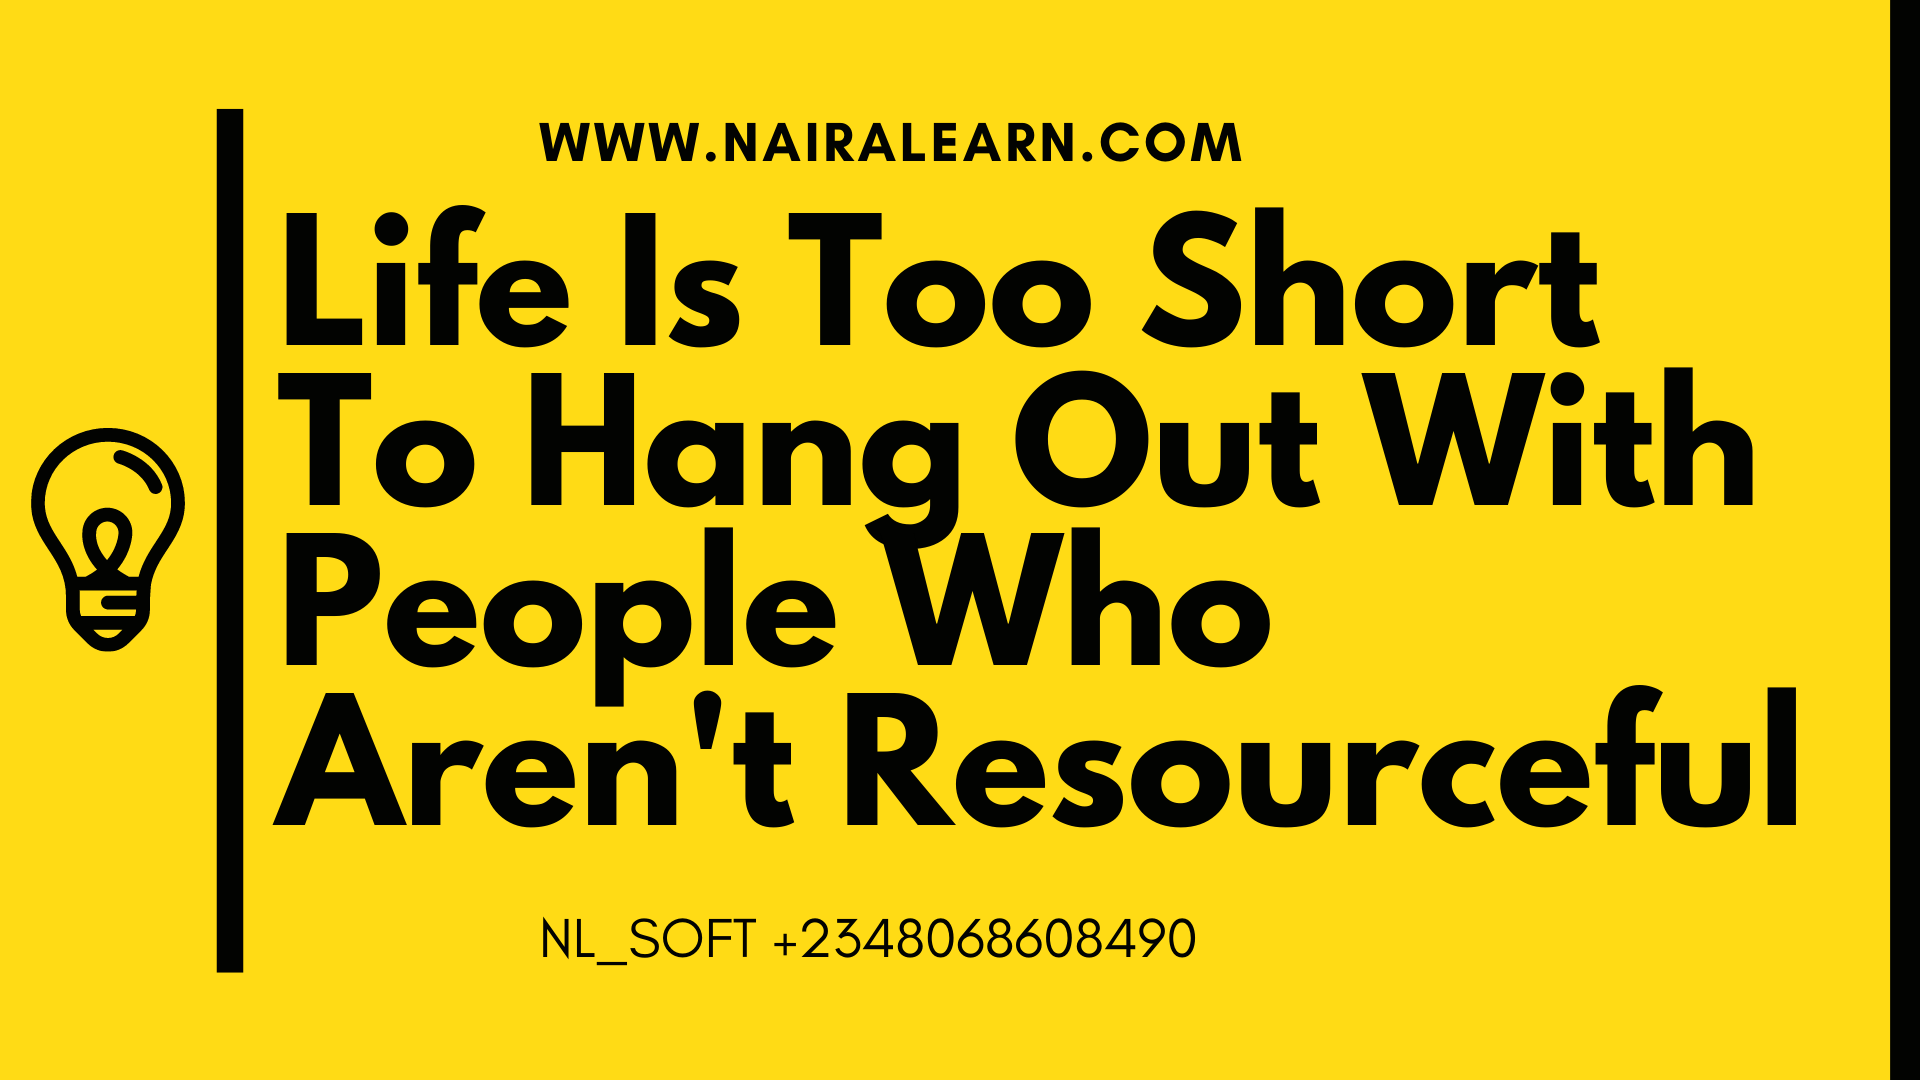 Life-Is-Too-Short-To-Hang-Out-With-People-Who-Arent-Resourceful